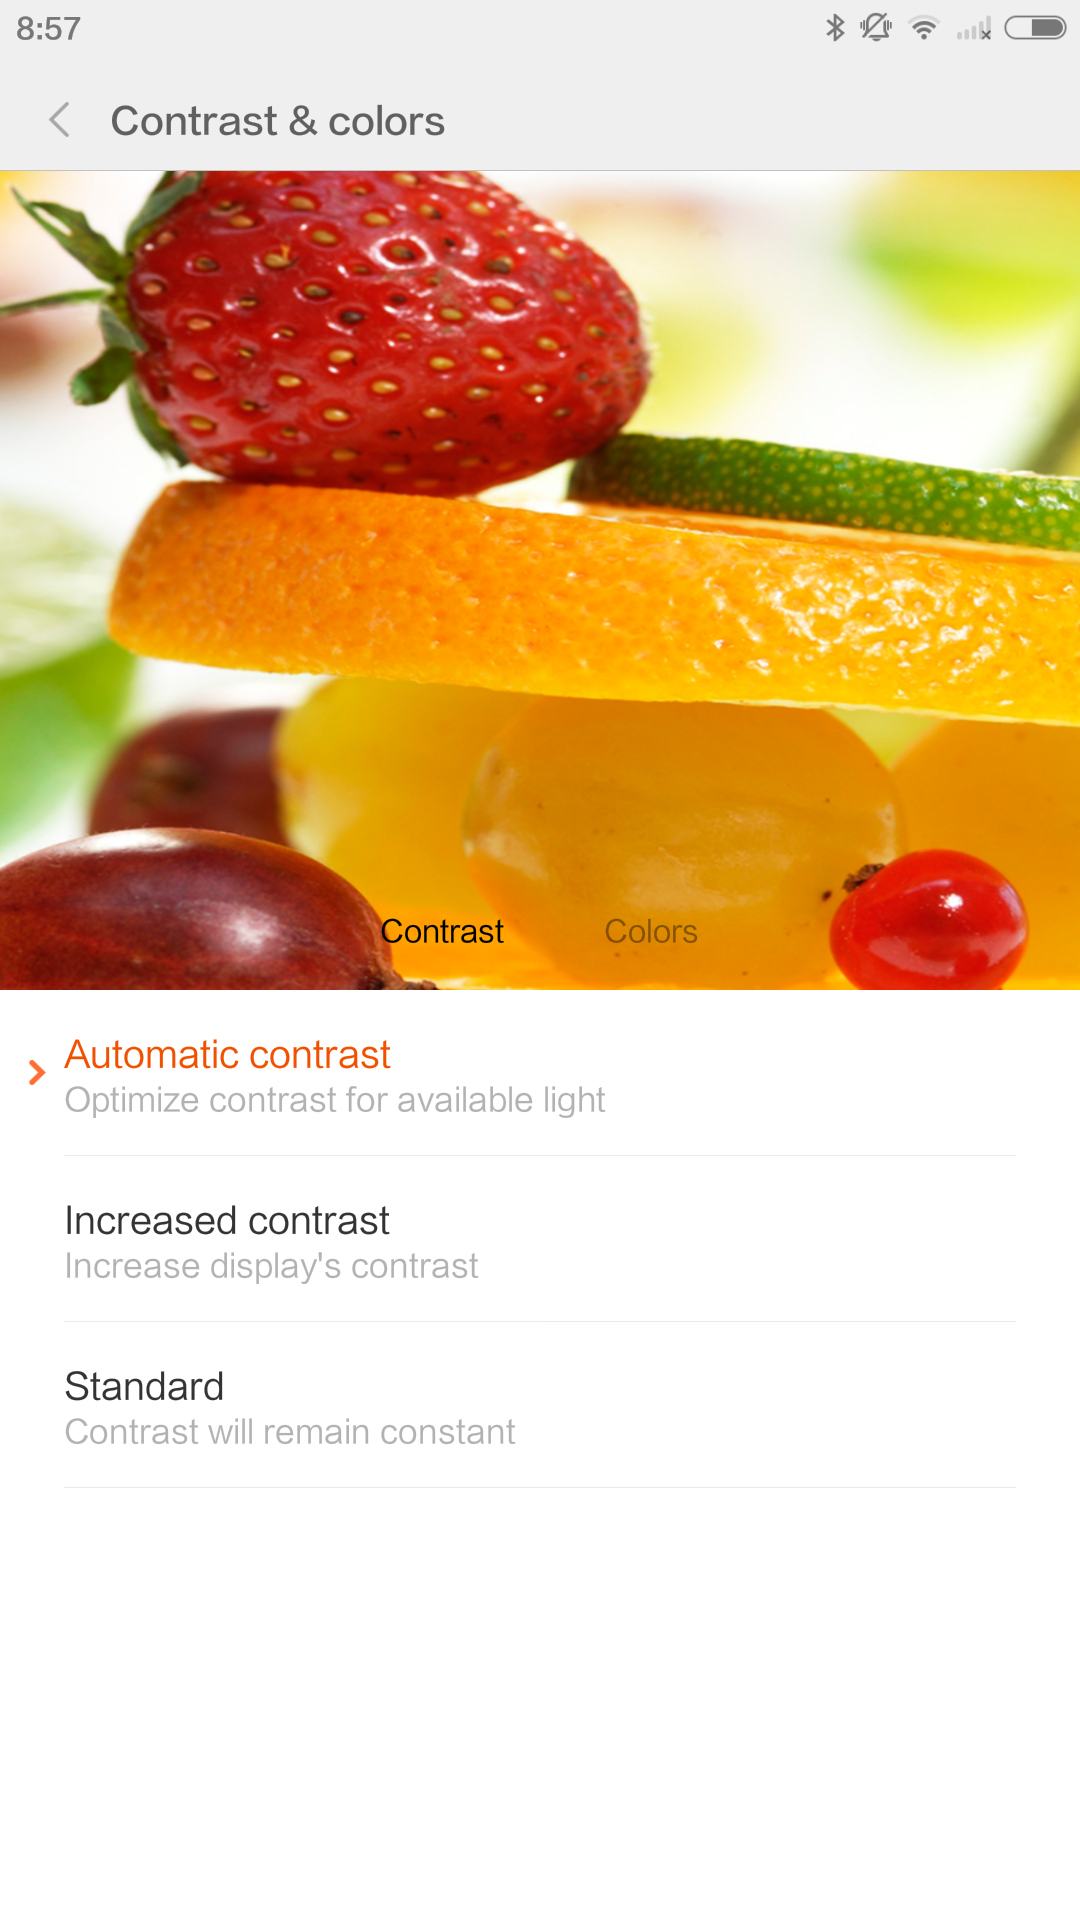 Color and contrast preferences can be adjusted from the MI UI display settings.